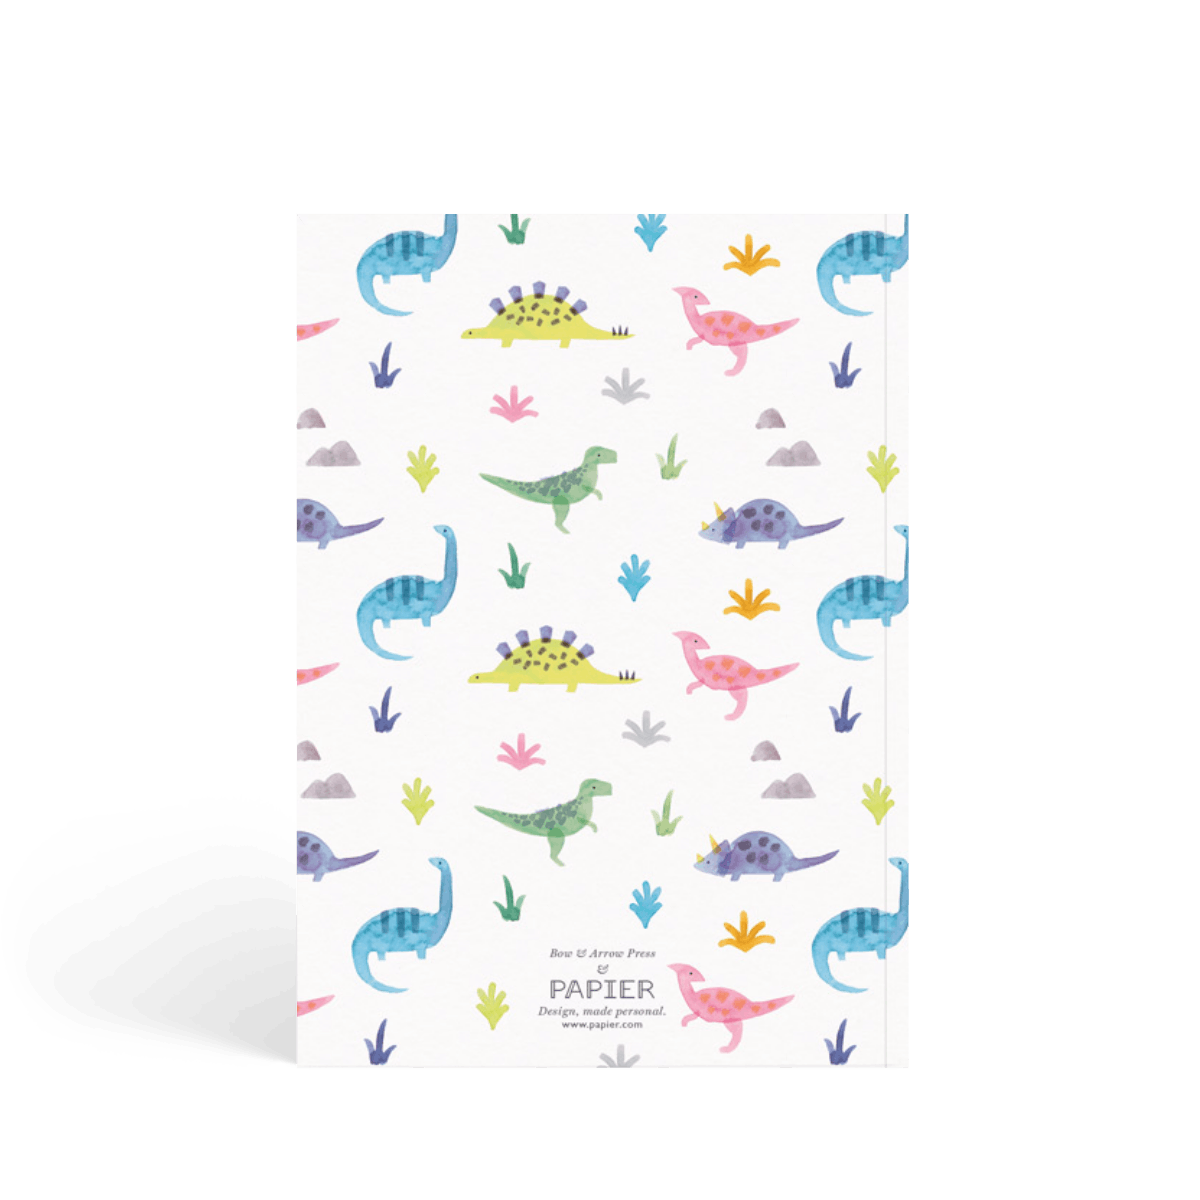 Https%3a%2f%2fwww.papier.com%2fproduct image%2f54952%2f5%2fbright dinosaurs 13206 back 1569438463.png?ixlib=rb 1.1